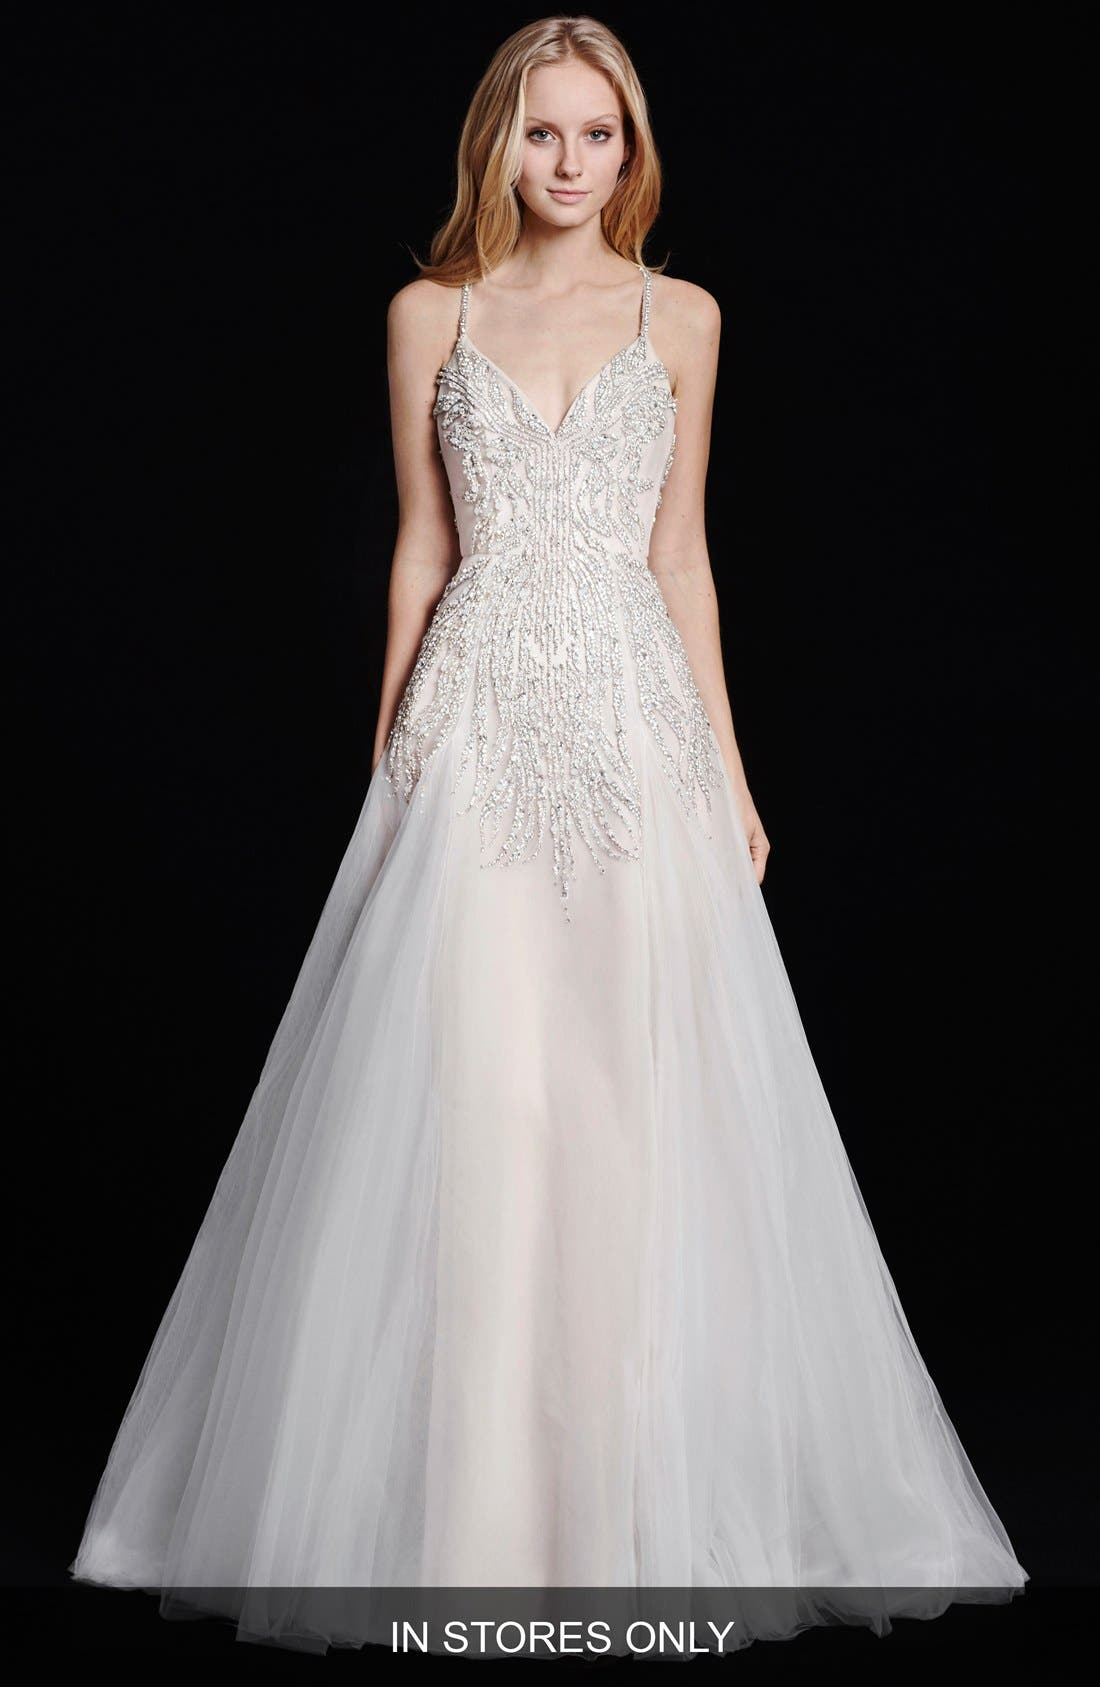 HAYLEY PAIGE 'Comet' Embellished Bodice A-Line Tulle Gown